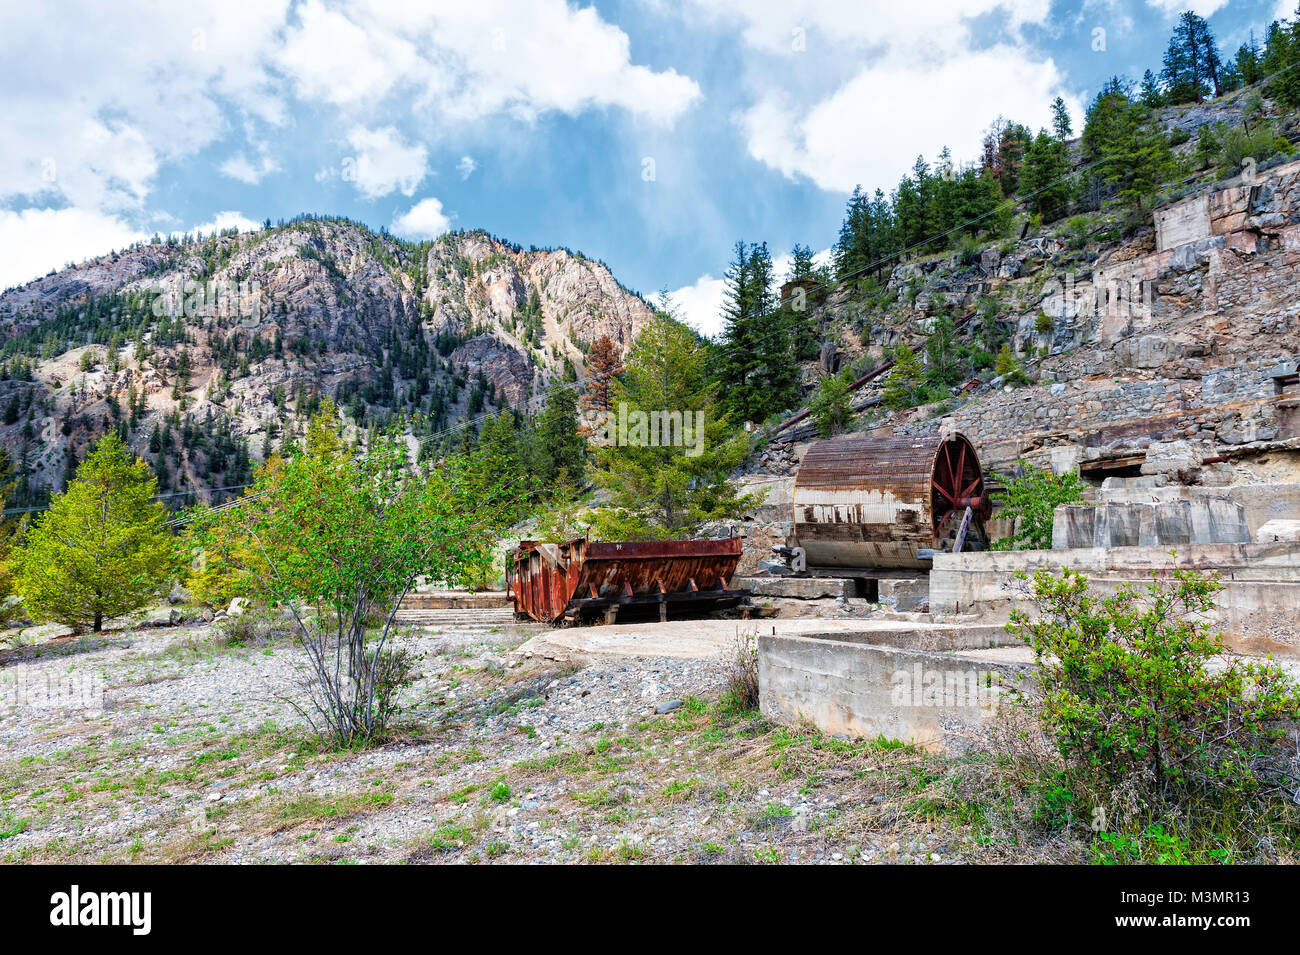 a deserted gold processing plant near Hedley B.C. - Stock Image